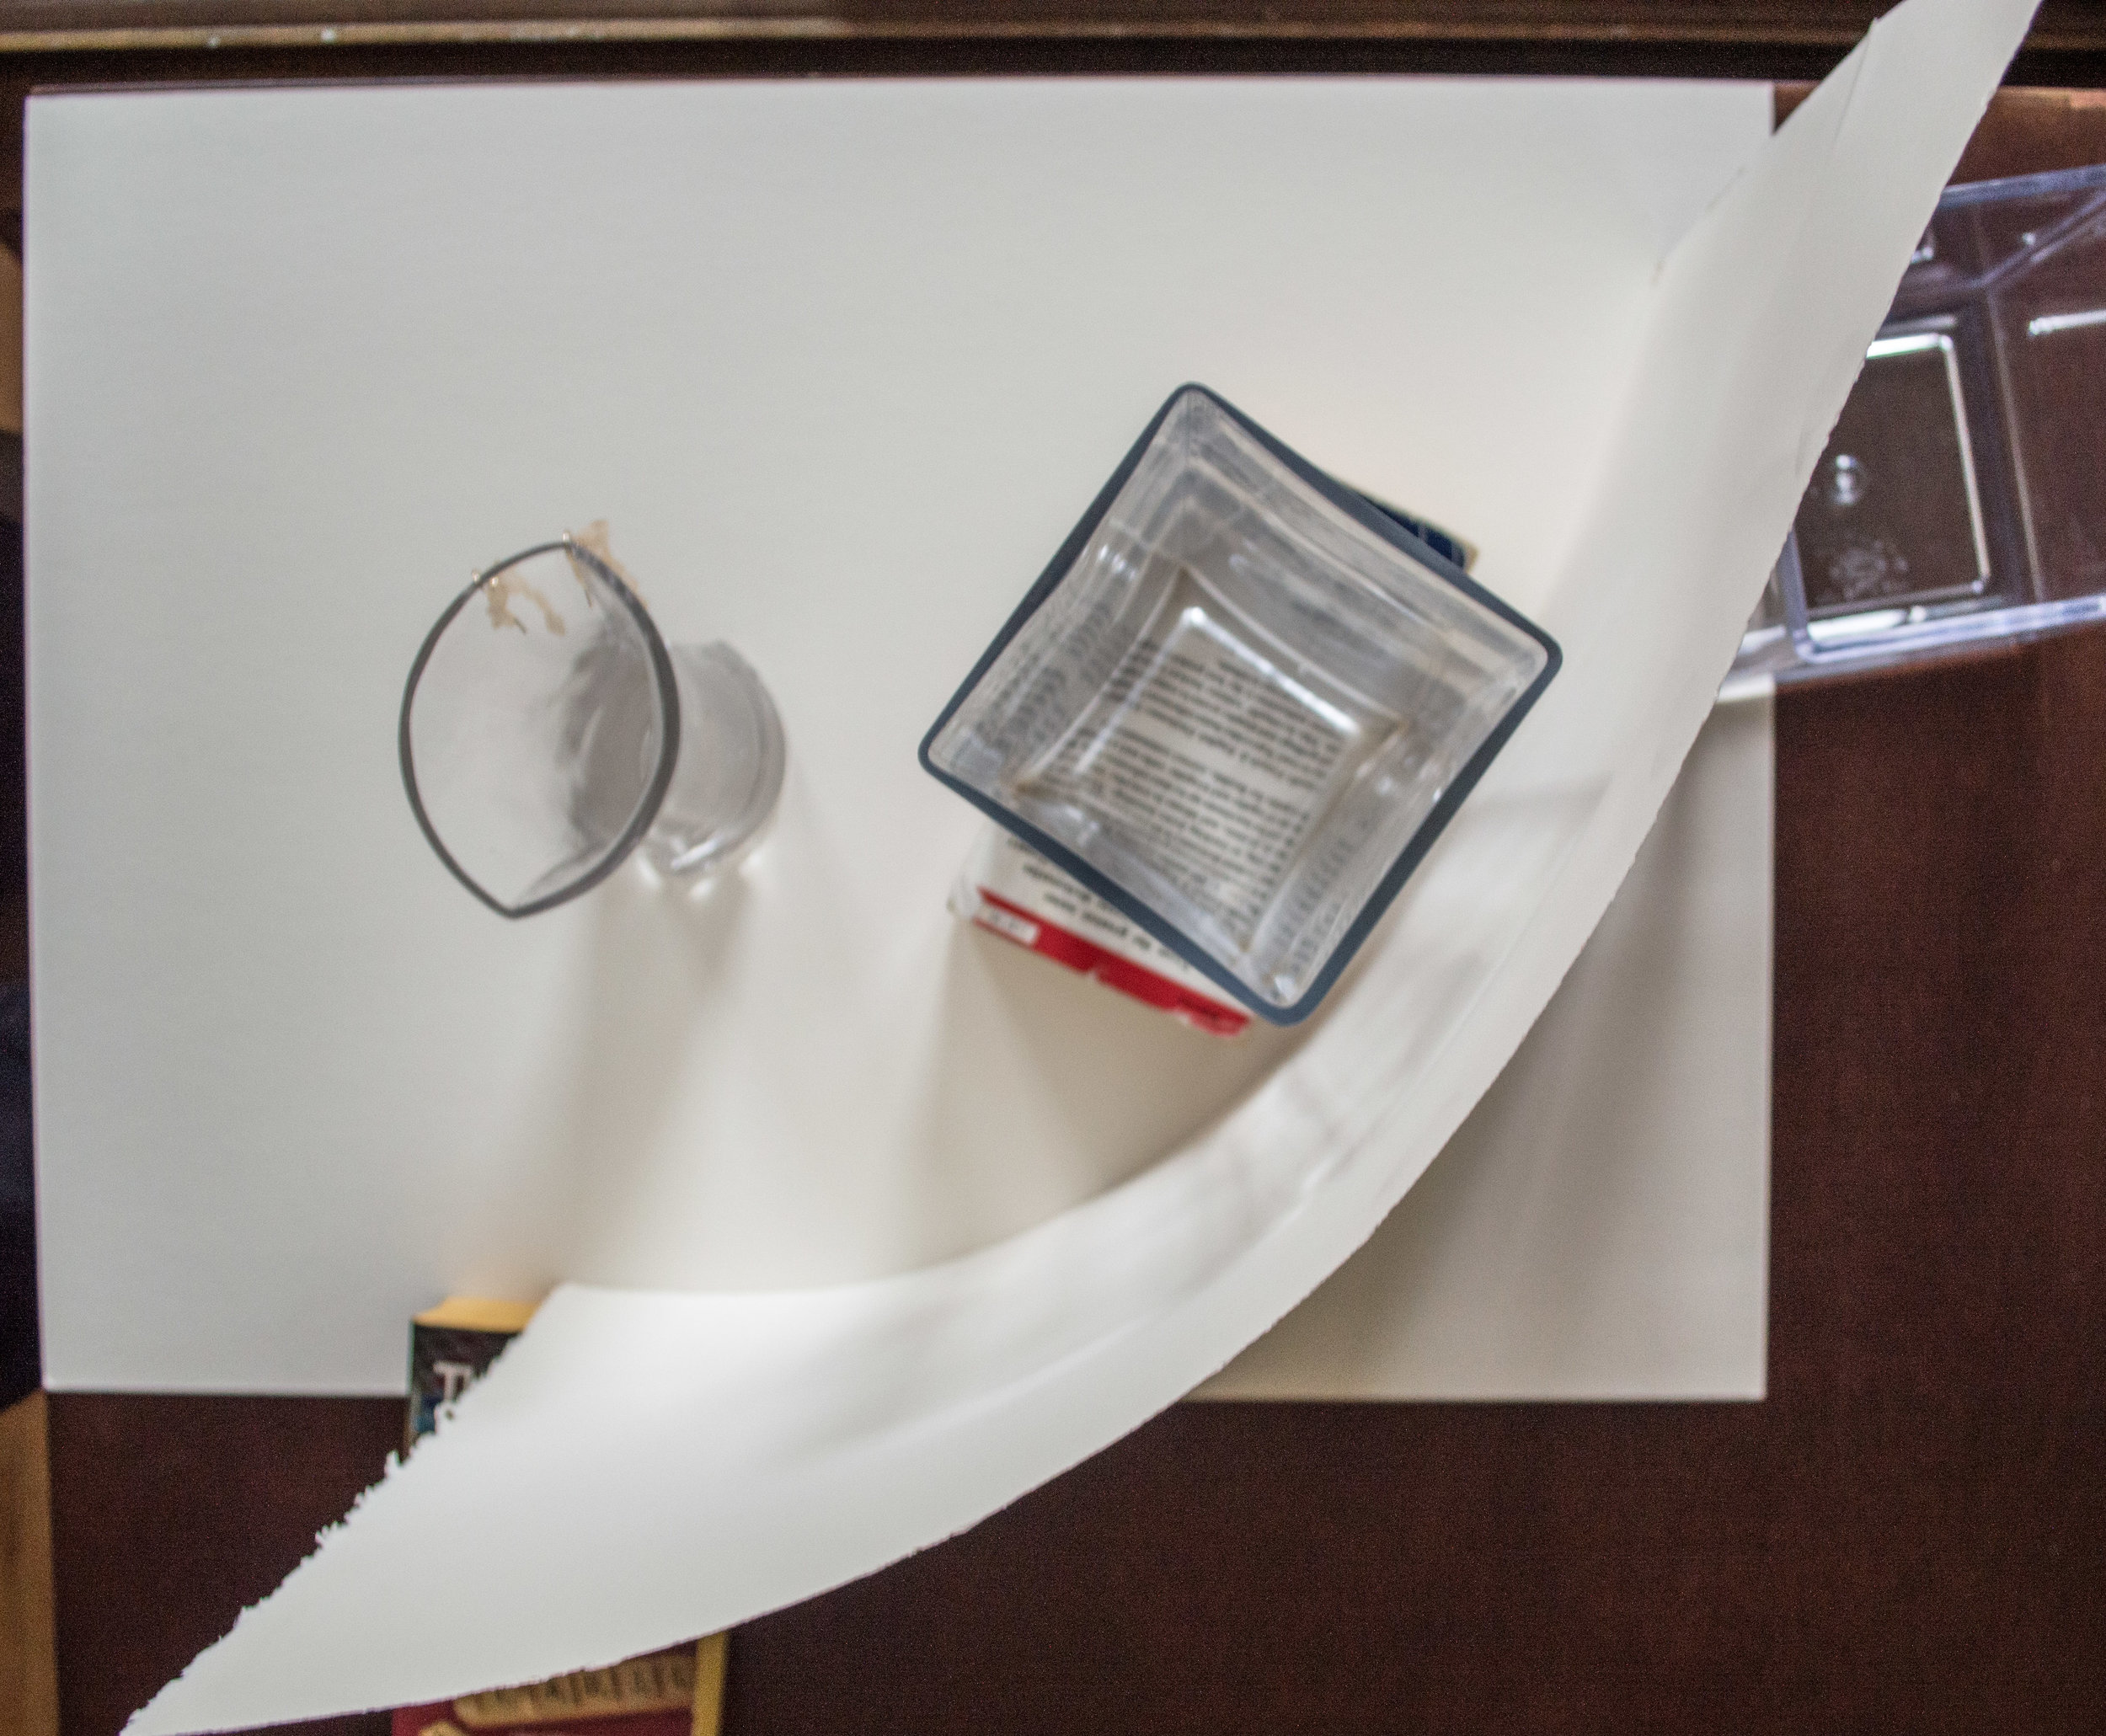 Similar setup, as seen from above. Instead of shooting into the window, this time I'm shooting perpendicular to the window, with glass-in-front-of-white-paper as the backdrop.